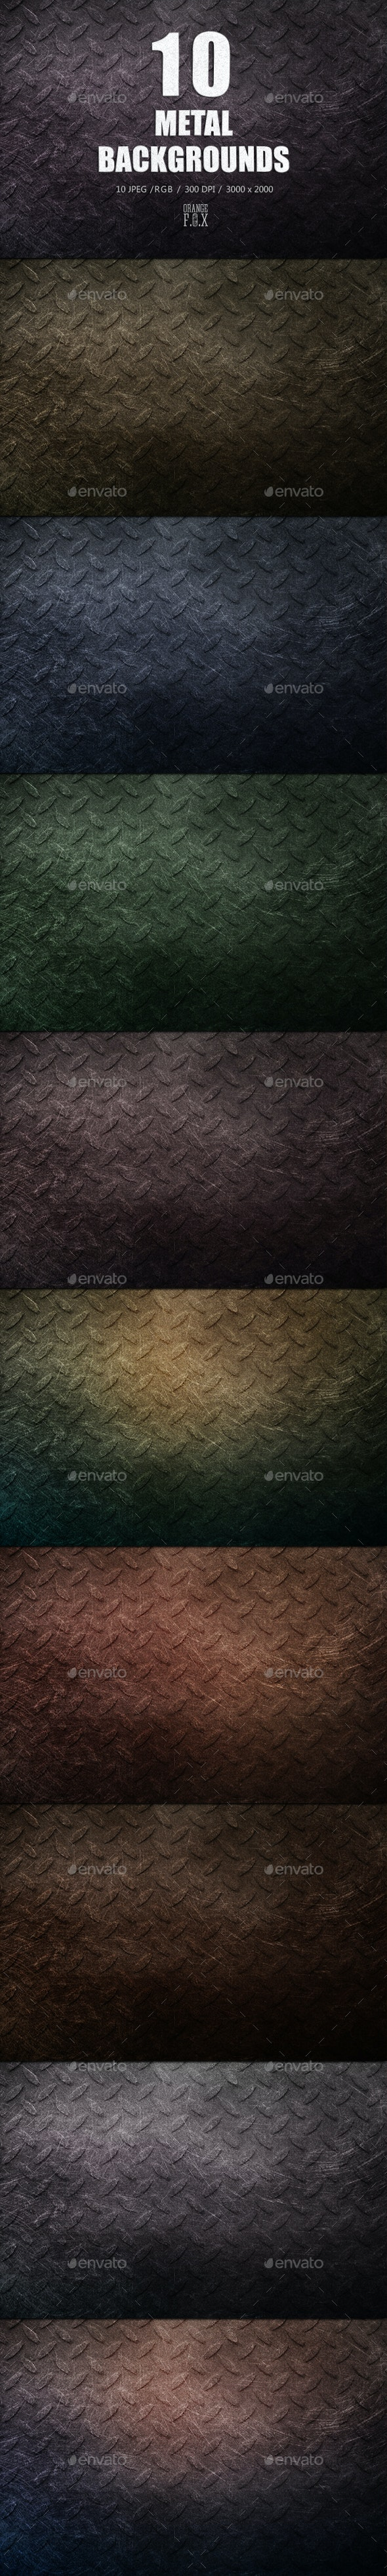 10 Metal Backgrounds - Abstract Backgrounds